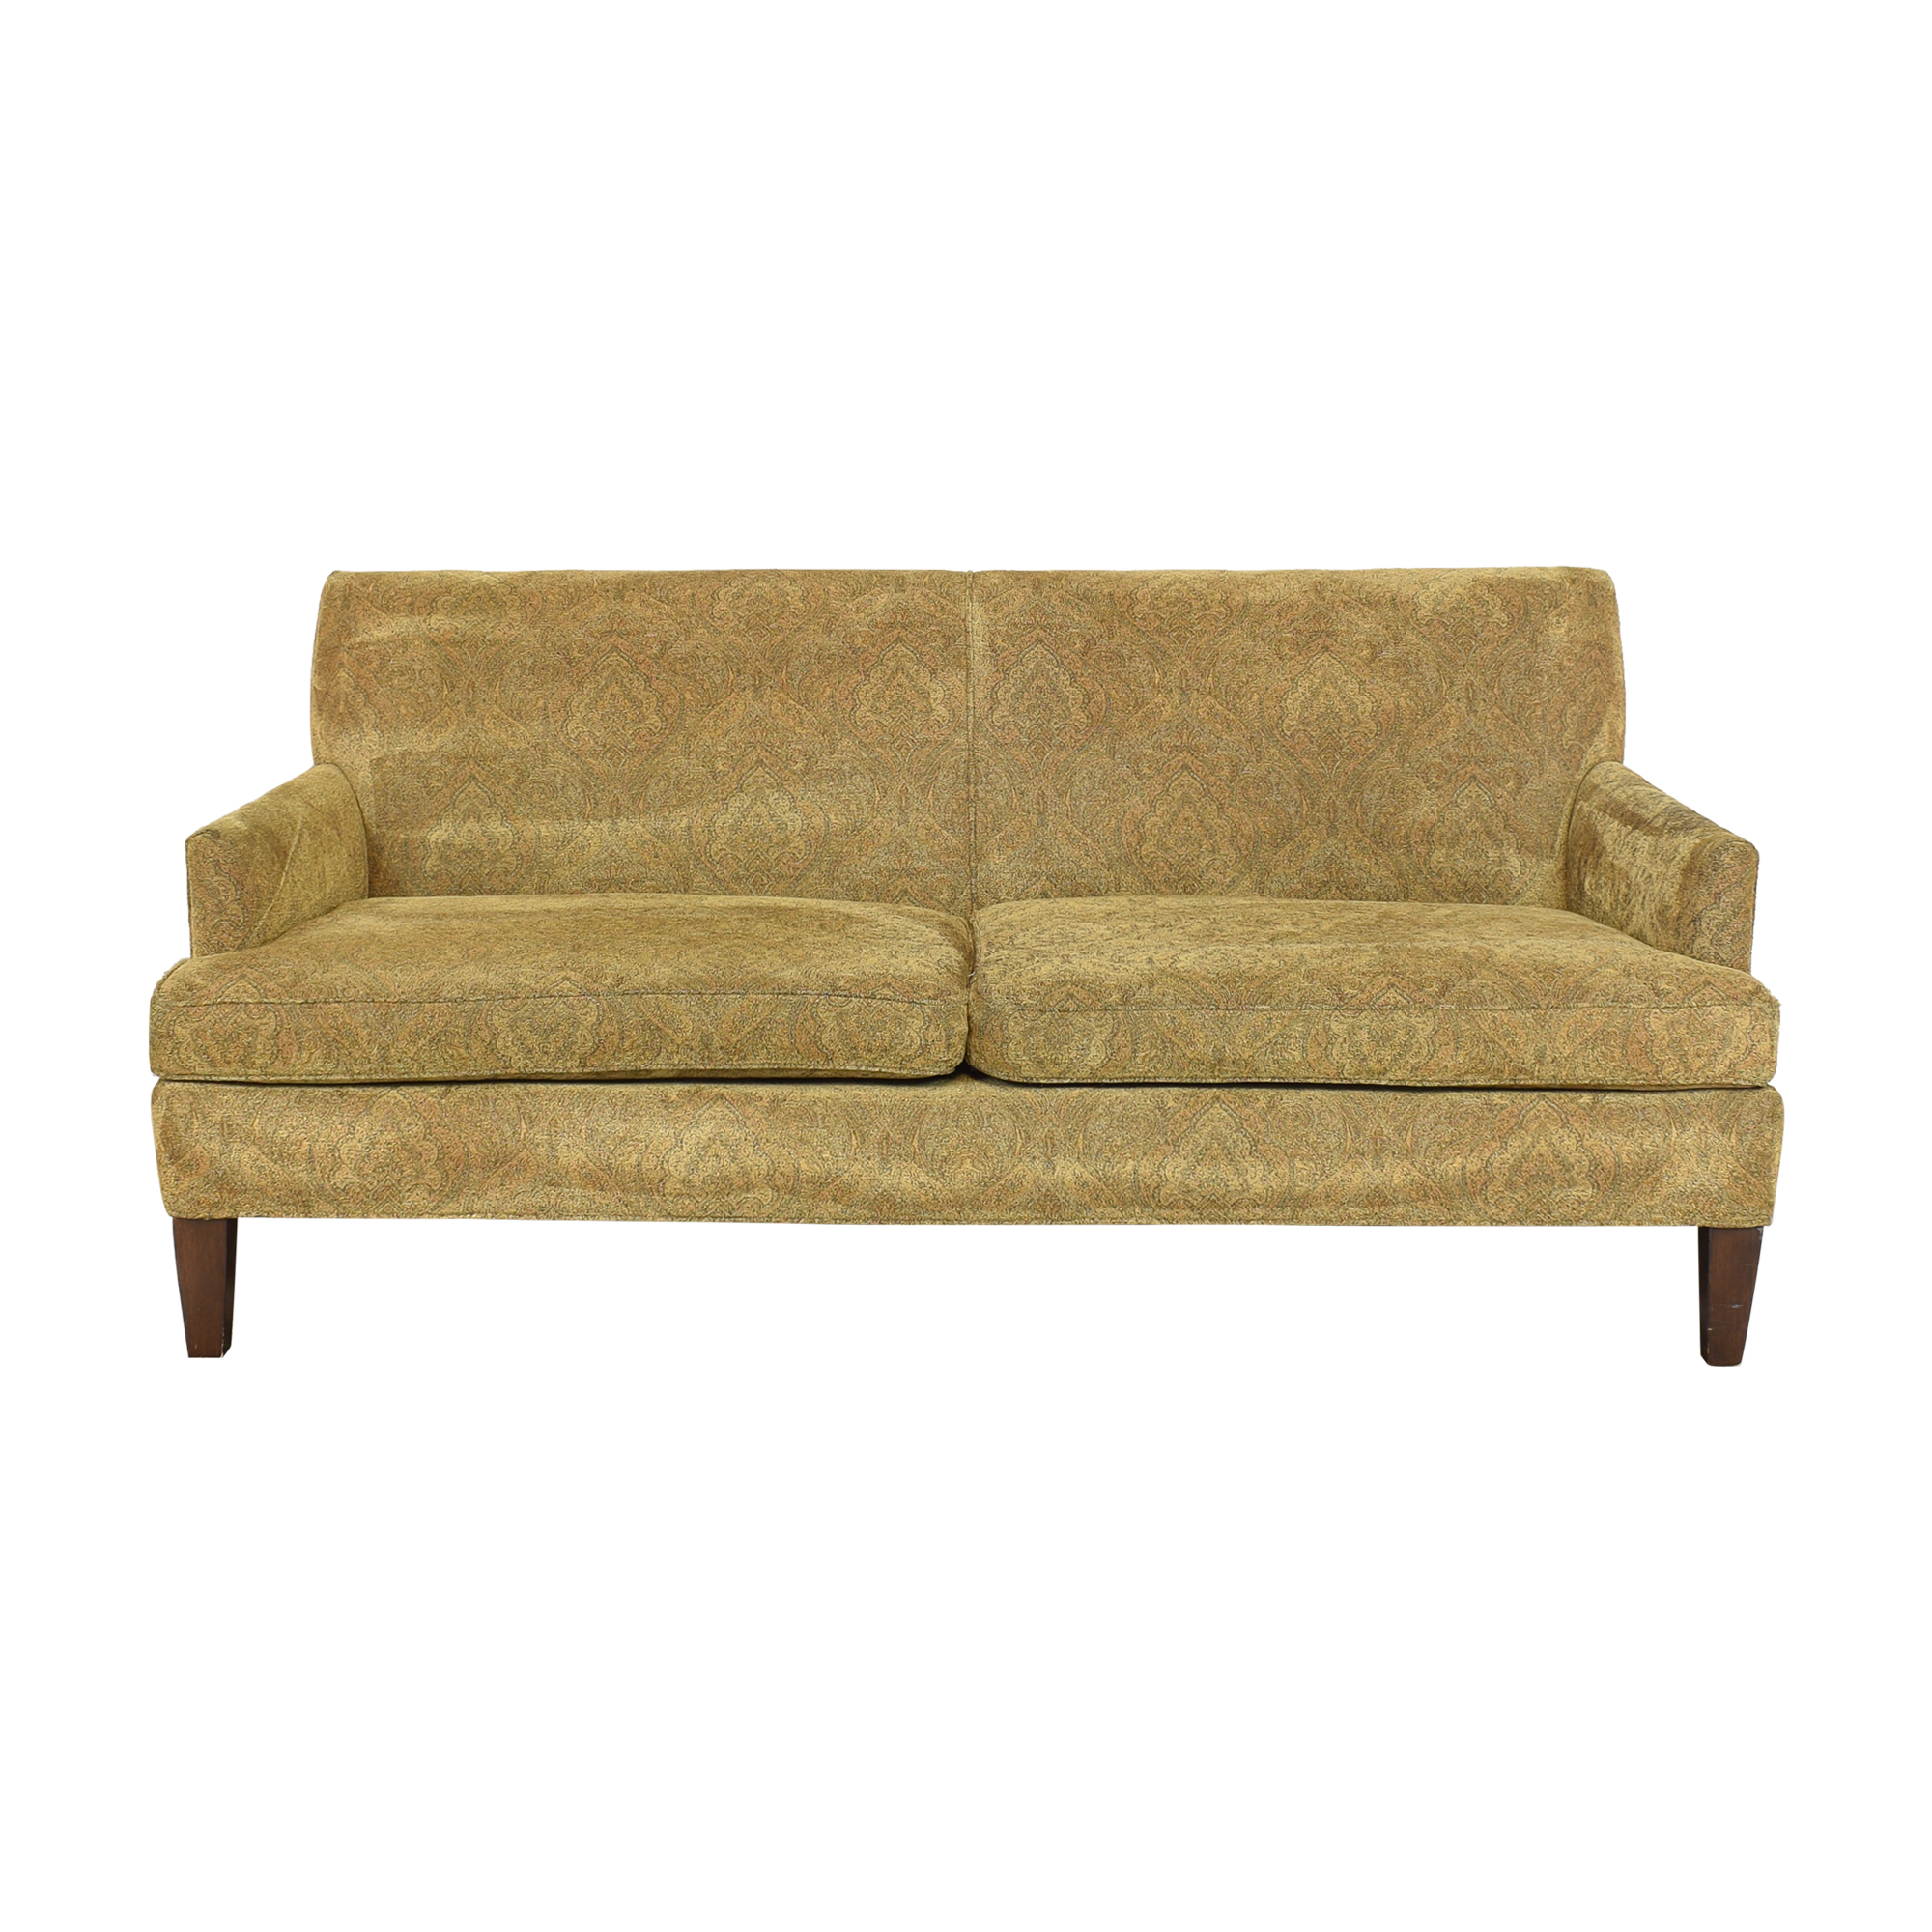 Lee Industries Lee Industries Two Cushion Apartment Sofa nj